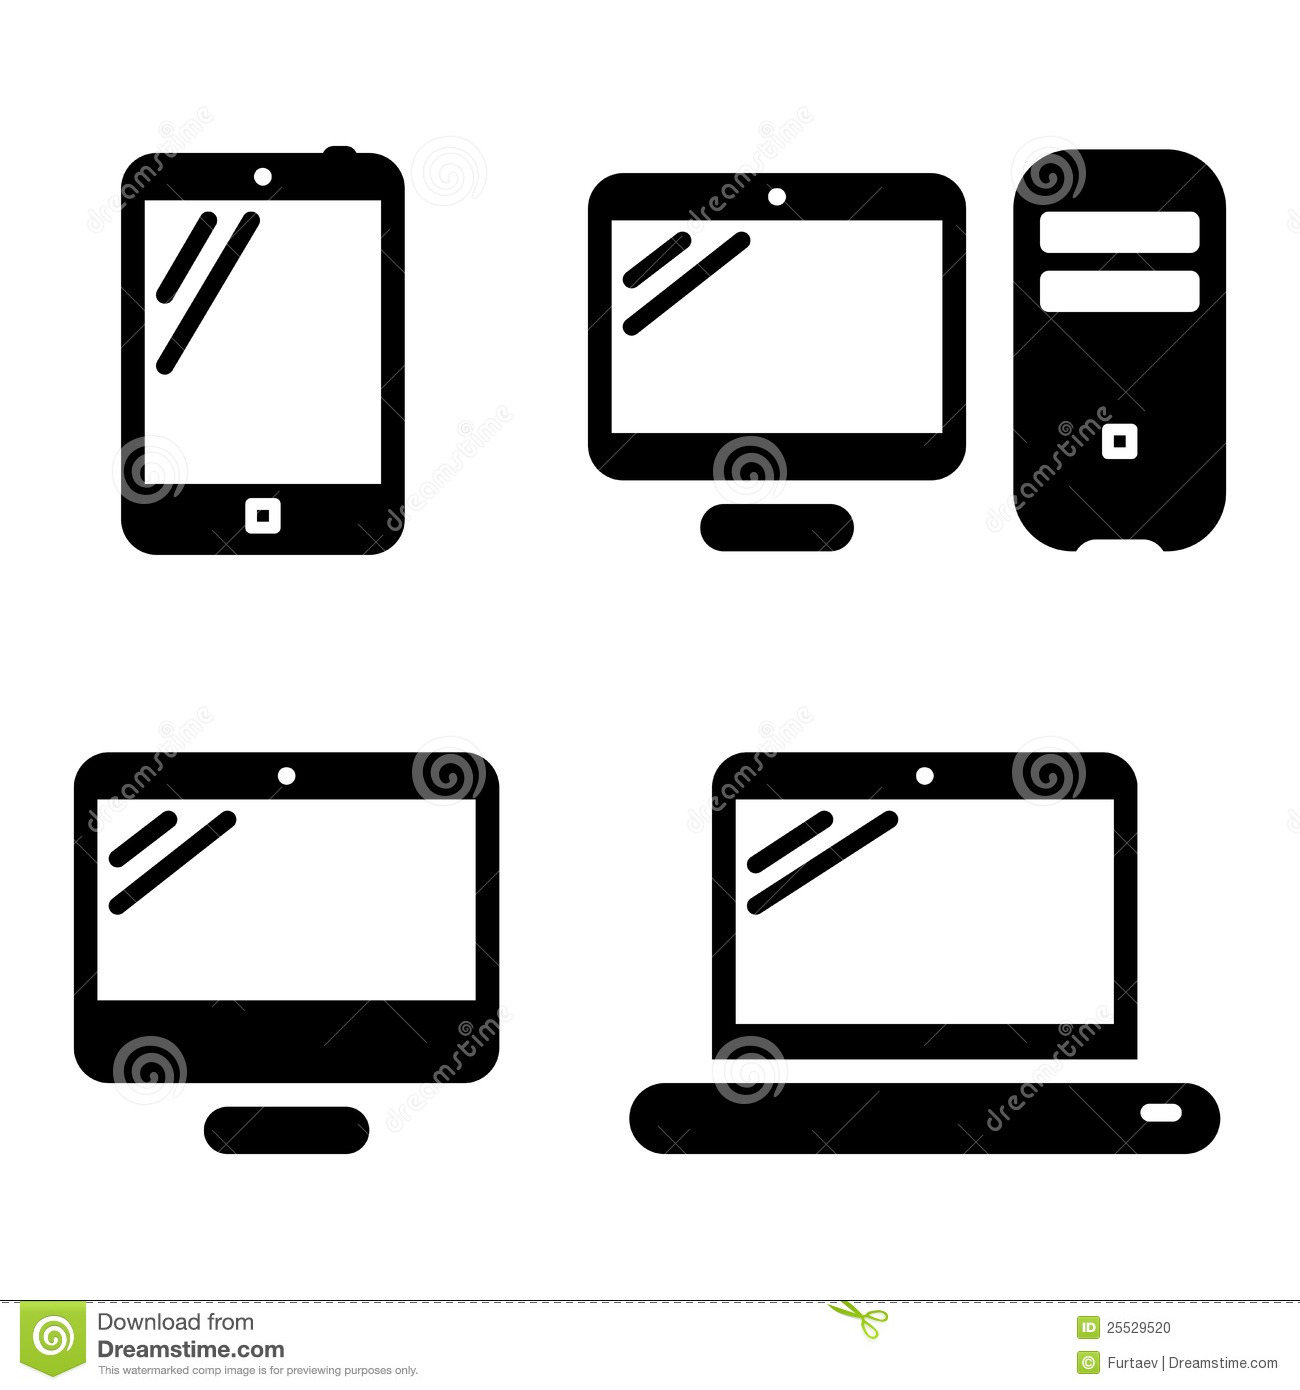 Black and White Computer Icon